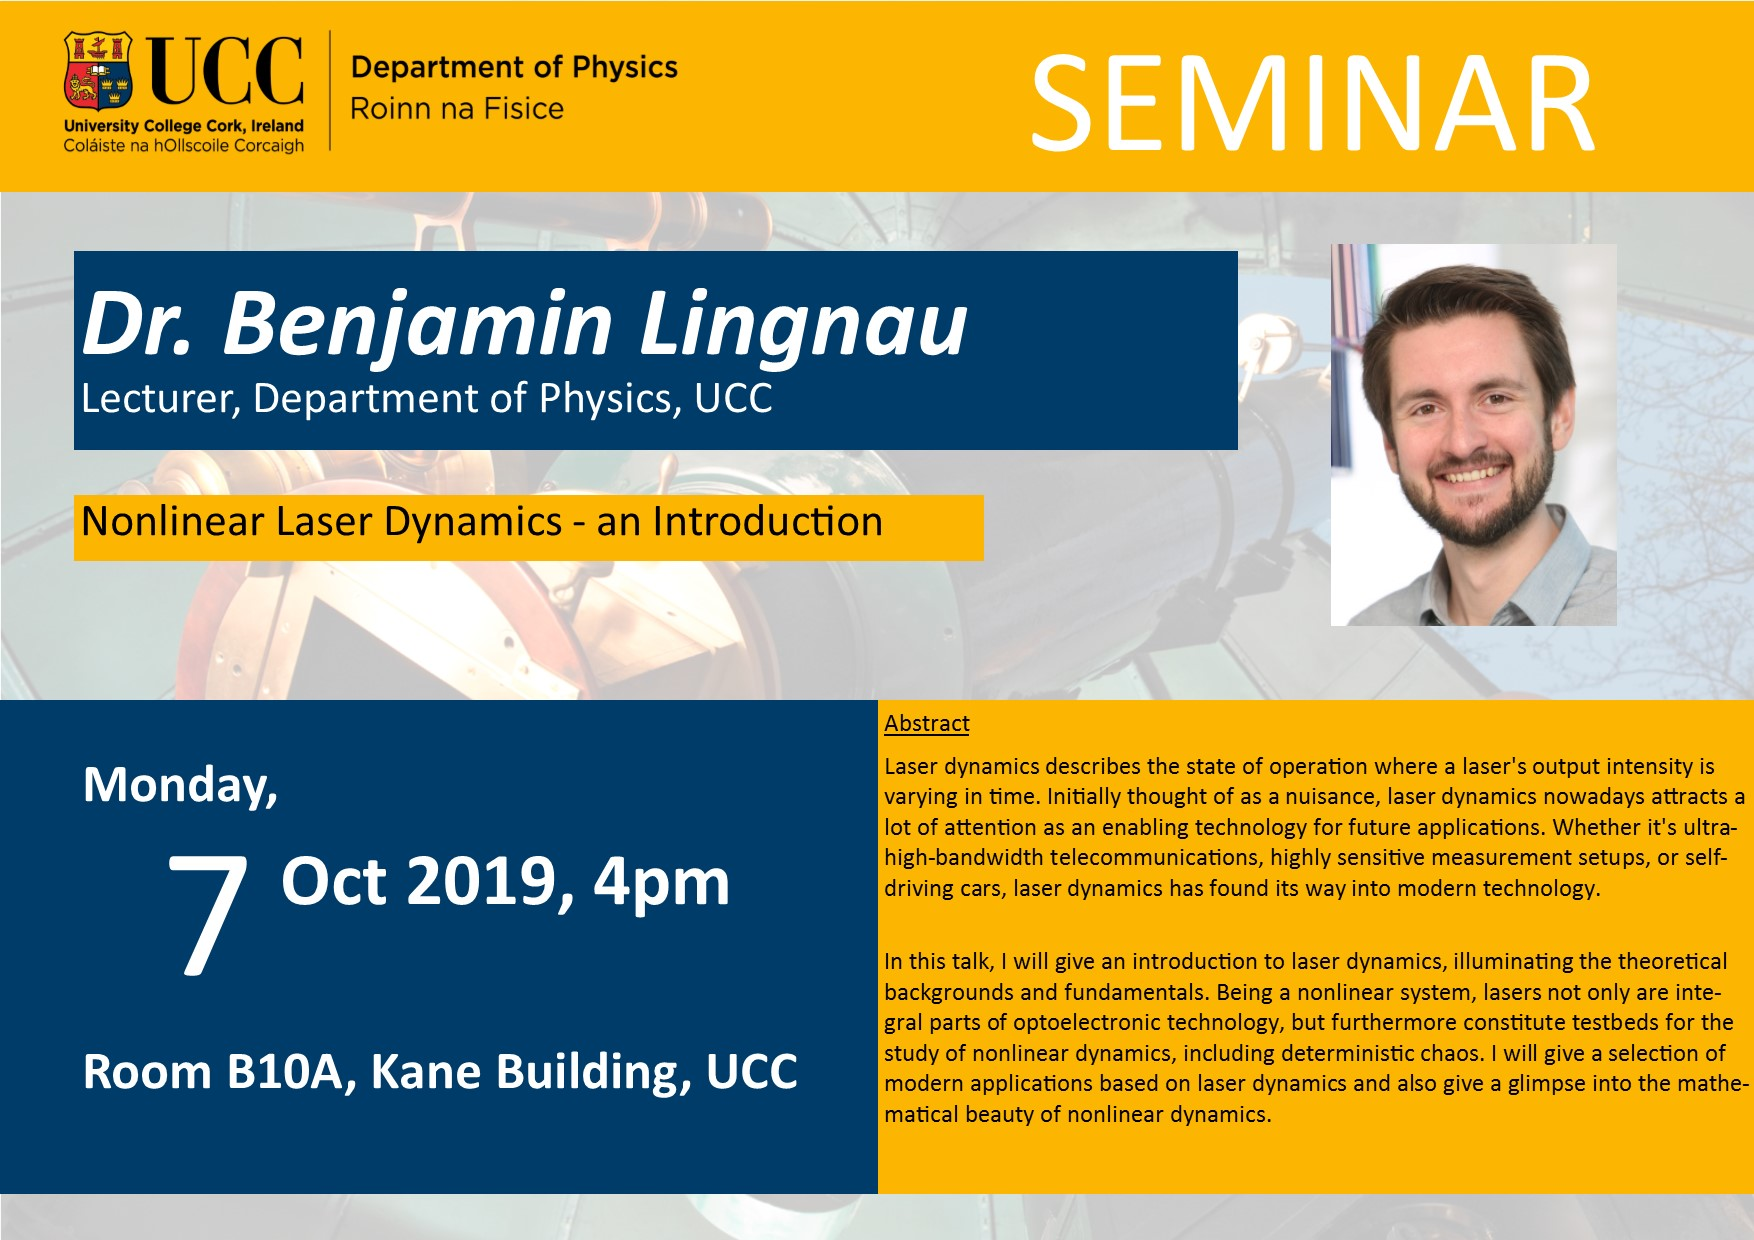 Image of Seminar poster for 7 Oct 2019